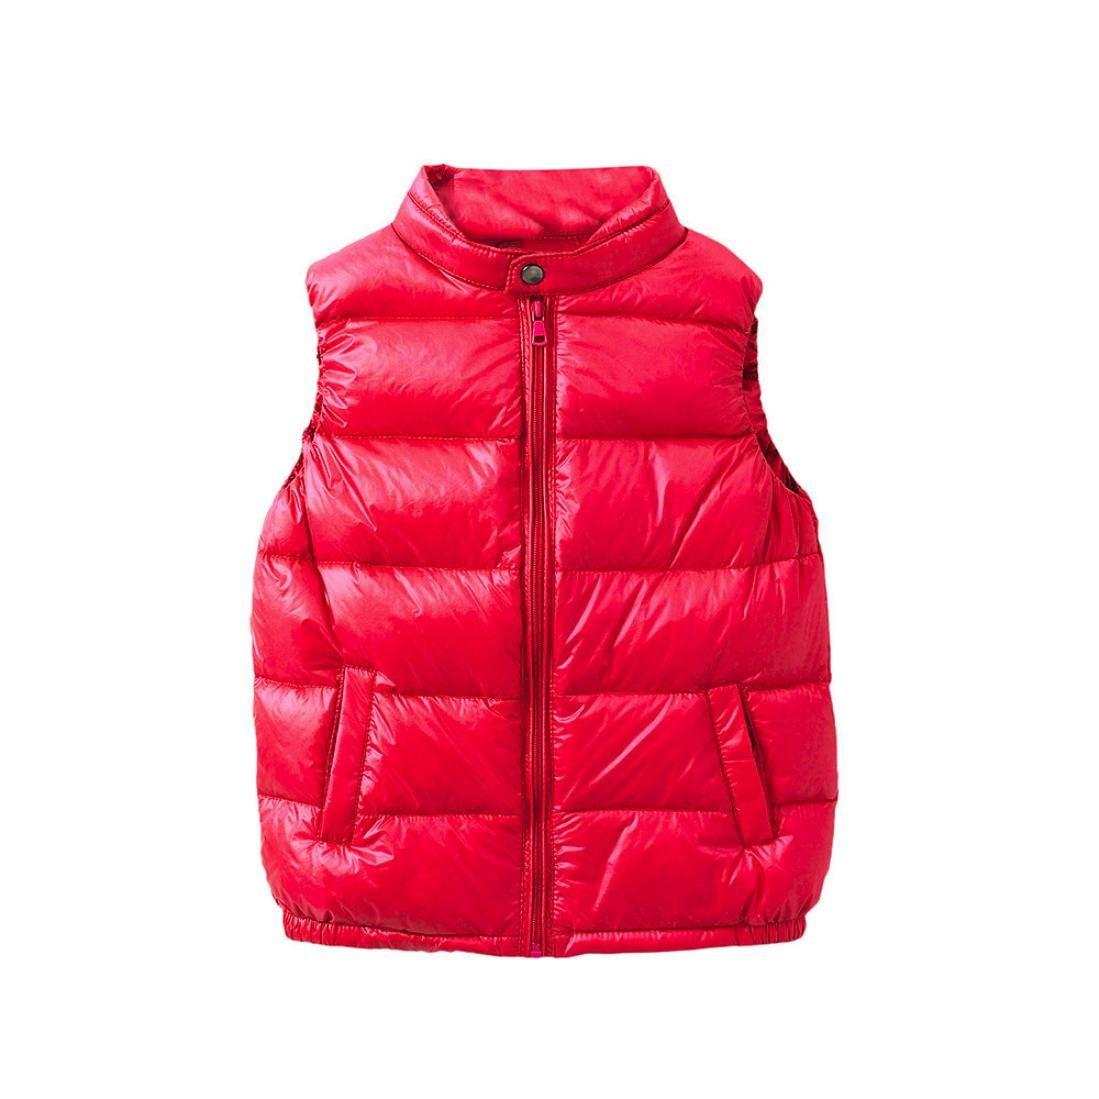 Toddler Boys Girls Winter Outwear Jacket Coat Lightweight Down Puffer Vest